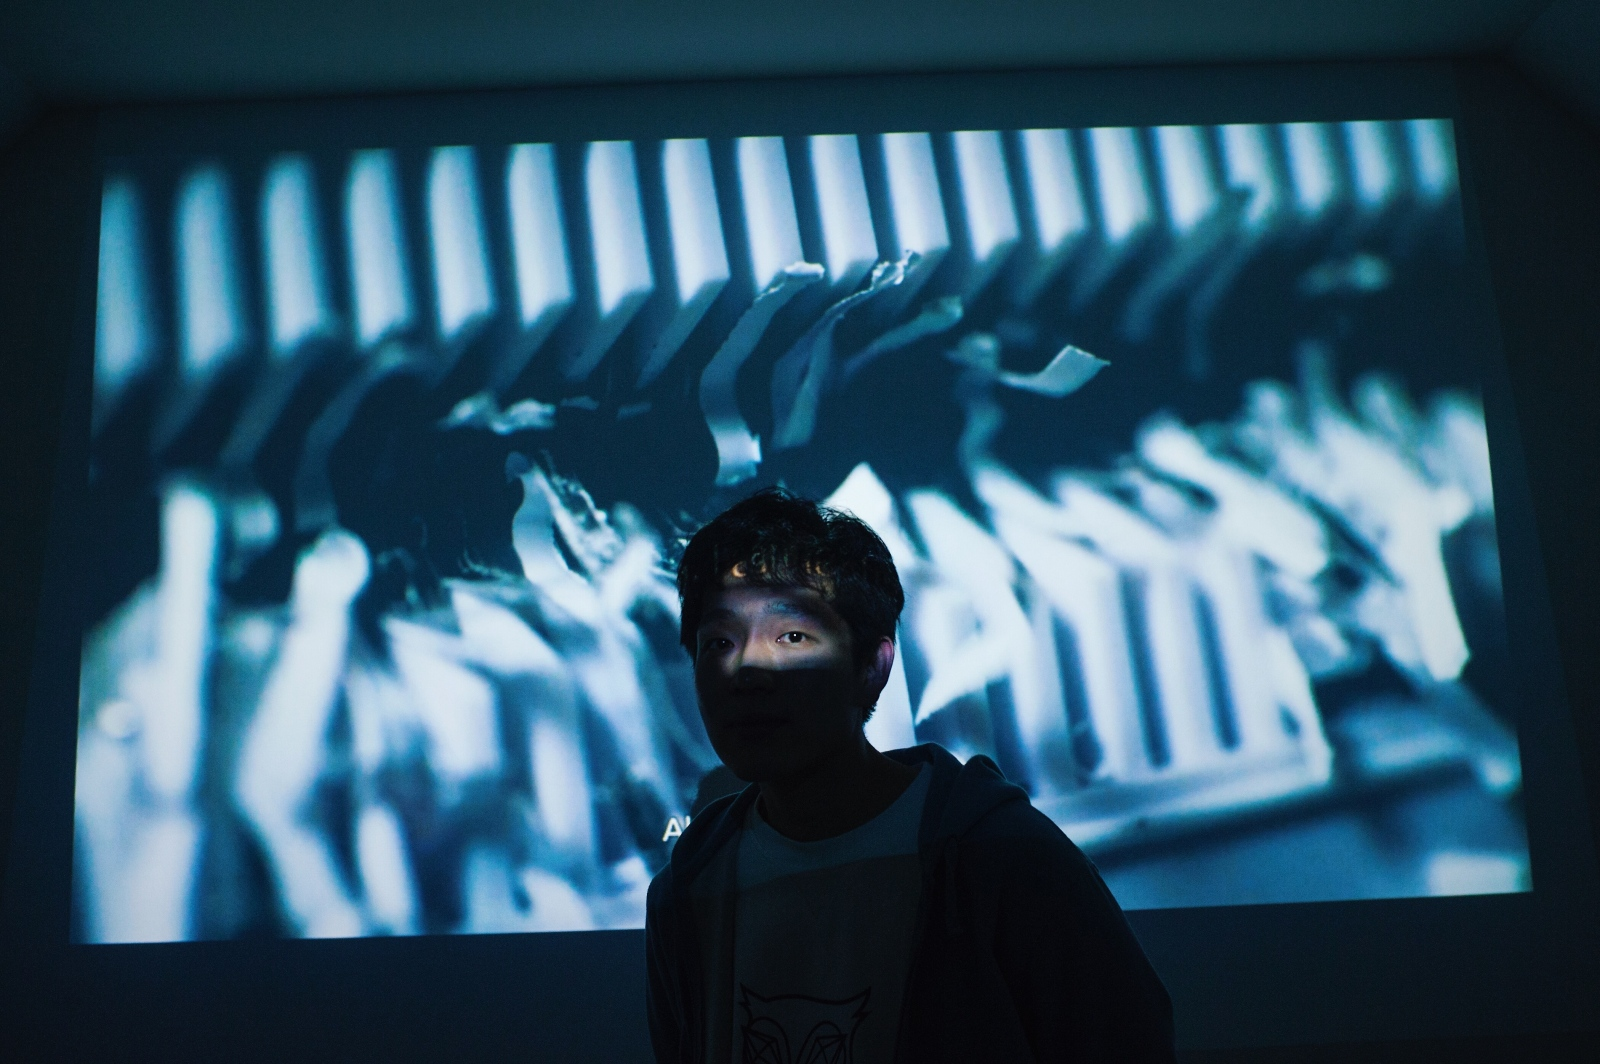 """Writer and artist Jungsik Lee (b. 1987) poses in front of his video piece, """"That Book (2017),"""" at LASER gallery, Yeonnam-dong, Seoul. Lee was diagnosed with HIV in December 2013 and has since made work that reflects his experience, interpretation of how HIV-positive individuals are perceived in Korea, and other """"diseases of modern society"""" such as isolation and despair. In this piece, Lee appears in front of the camera in a colorless room. His voice recites a book while his sitting figure scribbles on a blank notebook, then rips and shreds it apart. Through actualizing his experience and beliefs as pieces of artwork, Lee seeks to communicate his existence with the public and fight the urge to hide from Korean society. Lee felt different and alienated in his hometown of Daejeon from a young age, left, and spent time at youth centers during his teenage years. Those with HIV/AIDS are ostracized even within Korea's LGBTQ community, a marginalized group in its own right. """"The general attitude toward HIV/AIDS patients has not changed since the 90s. With one's diagnosis comes isolation,"""" said Lee, explaining that such an attitude makes it difficult for individuals to accept and seek treatment."""